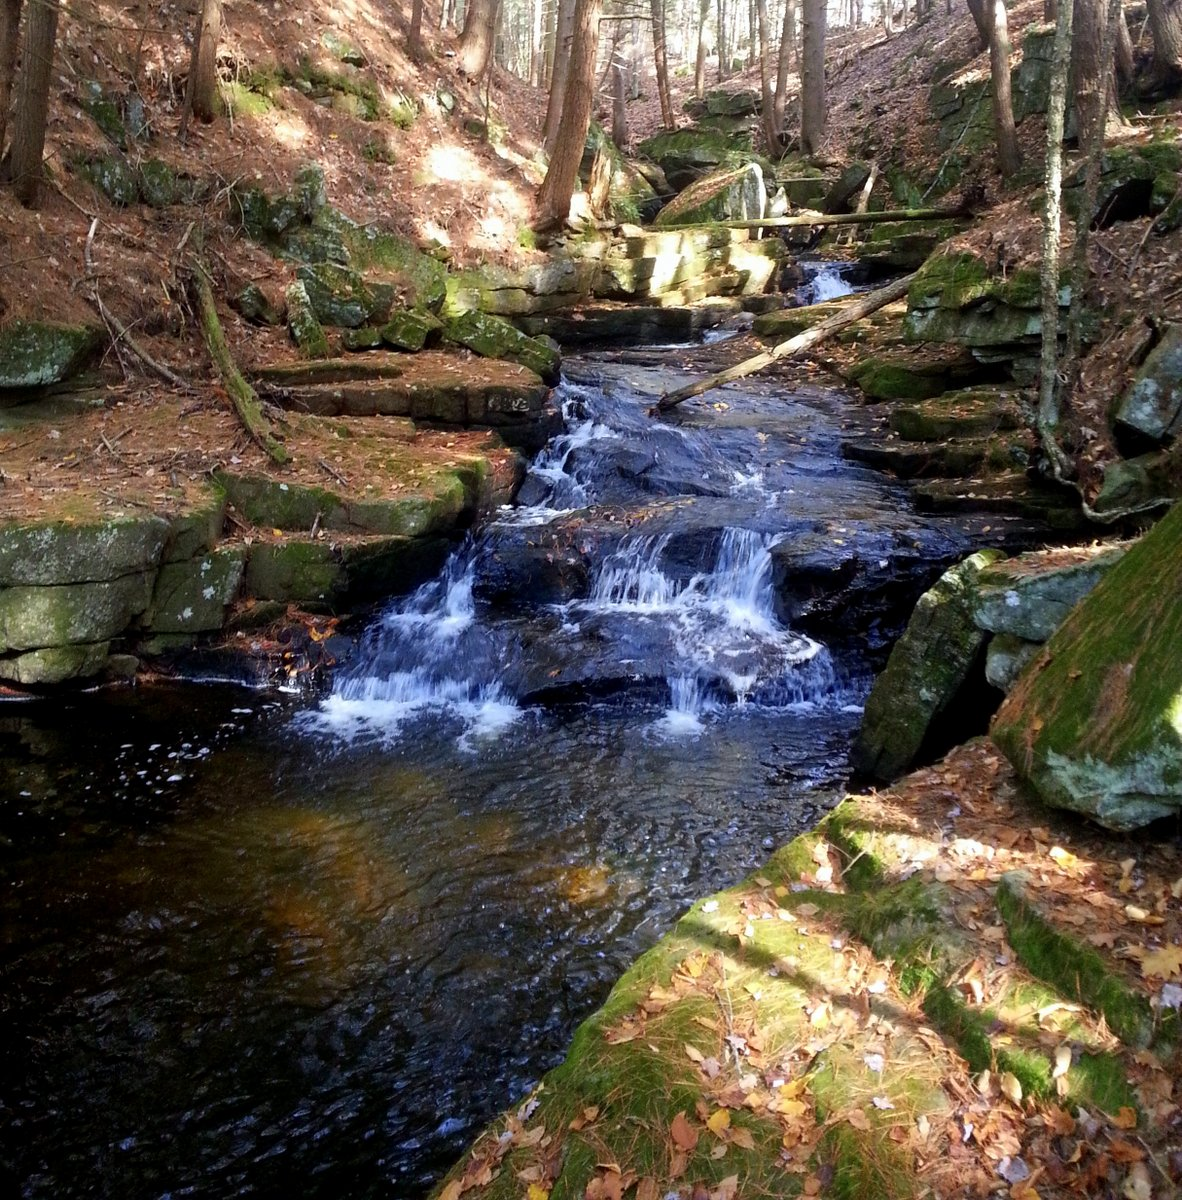 1. Brickyard Brook